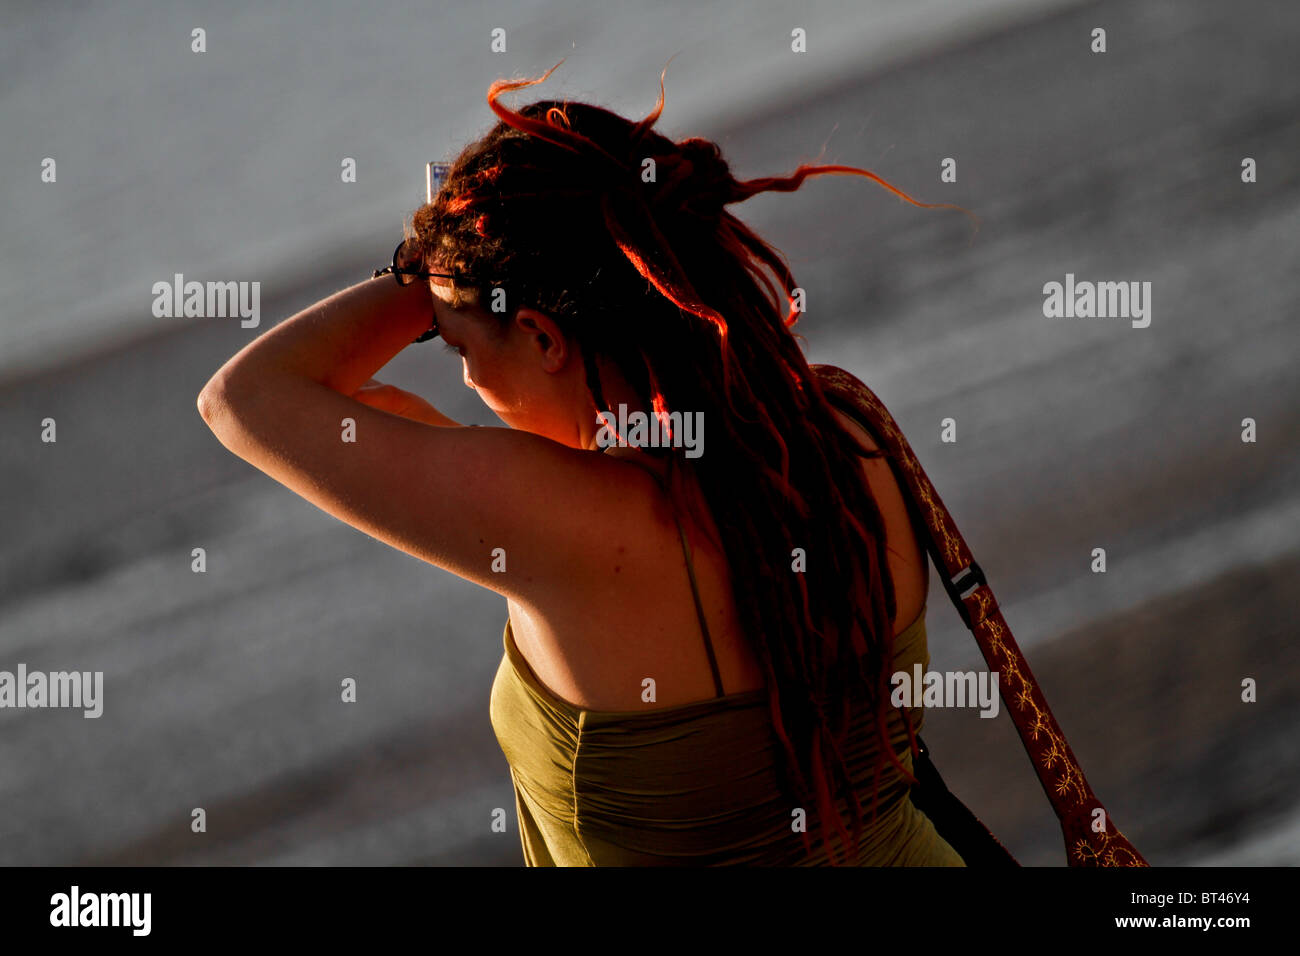 back view of young lady looking at the sunset, holding her arm up to cover her face from the sun - Stock Image